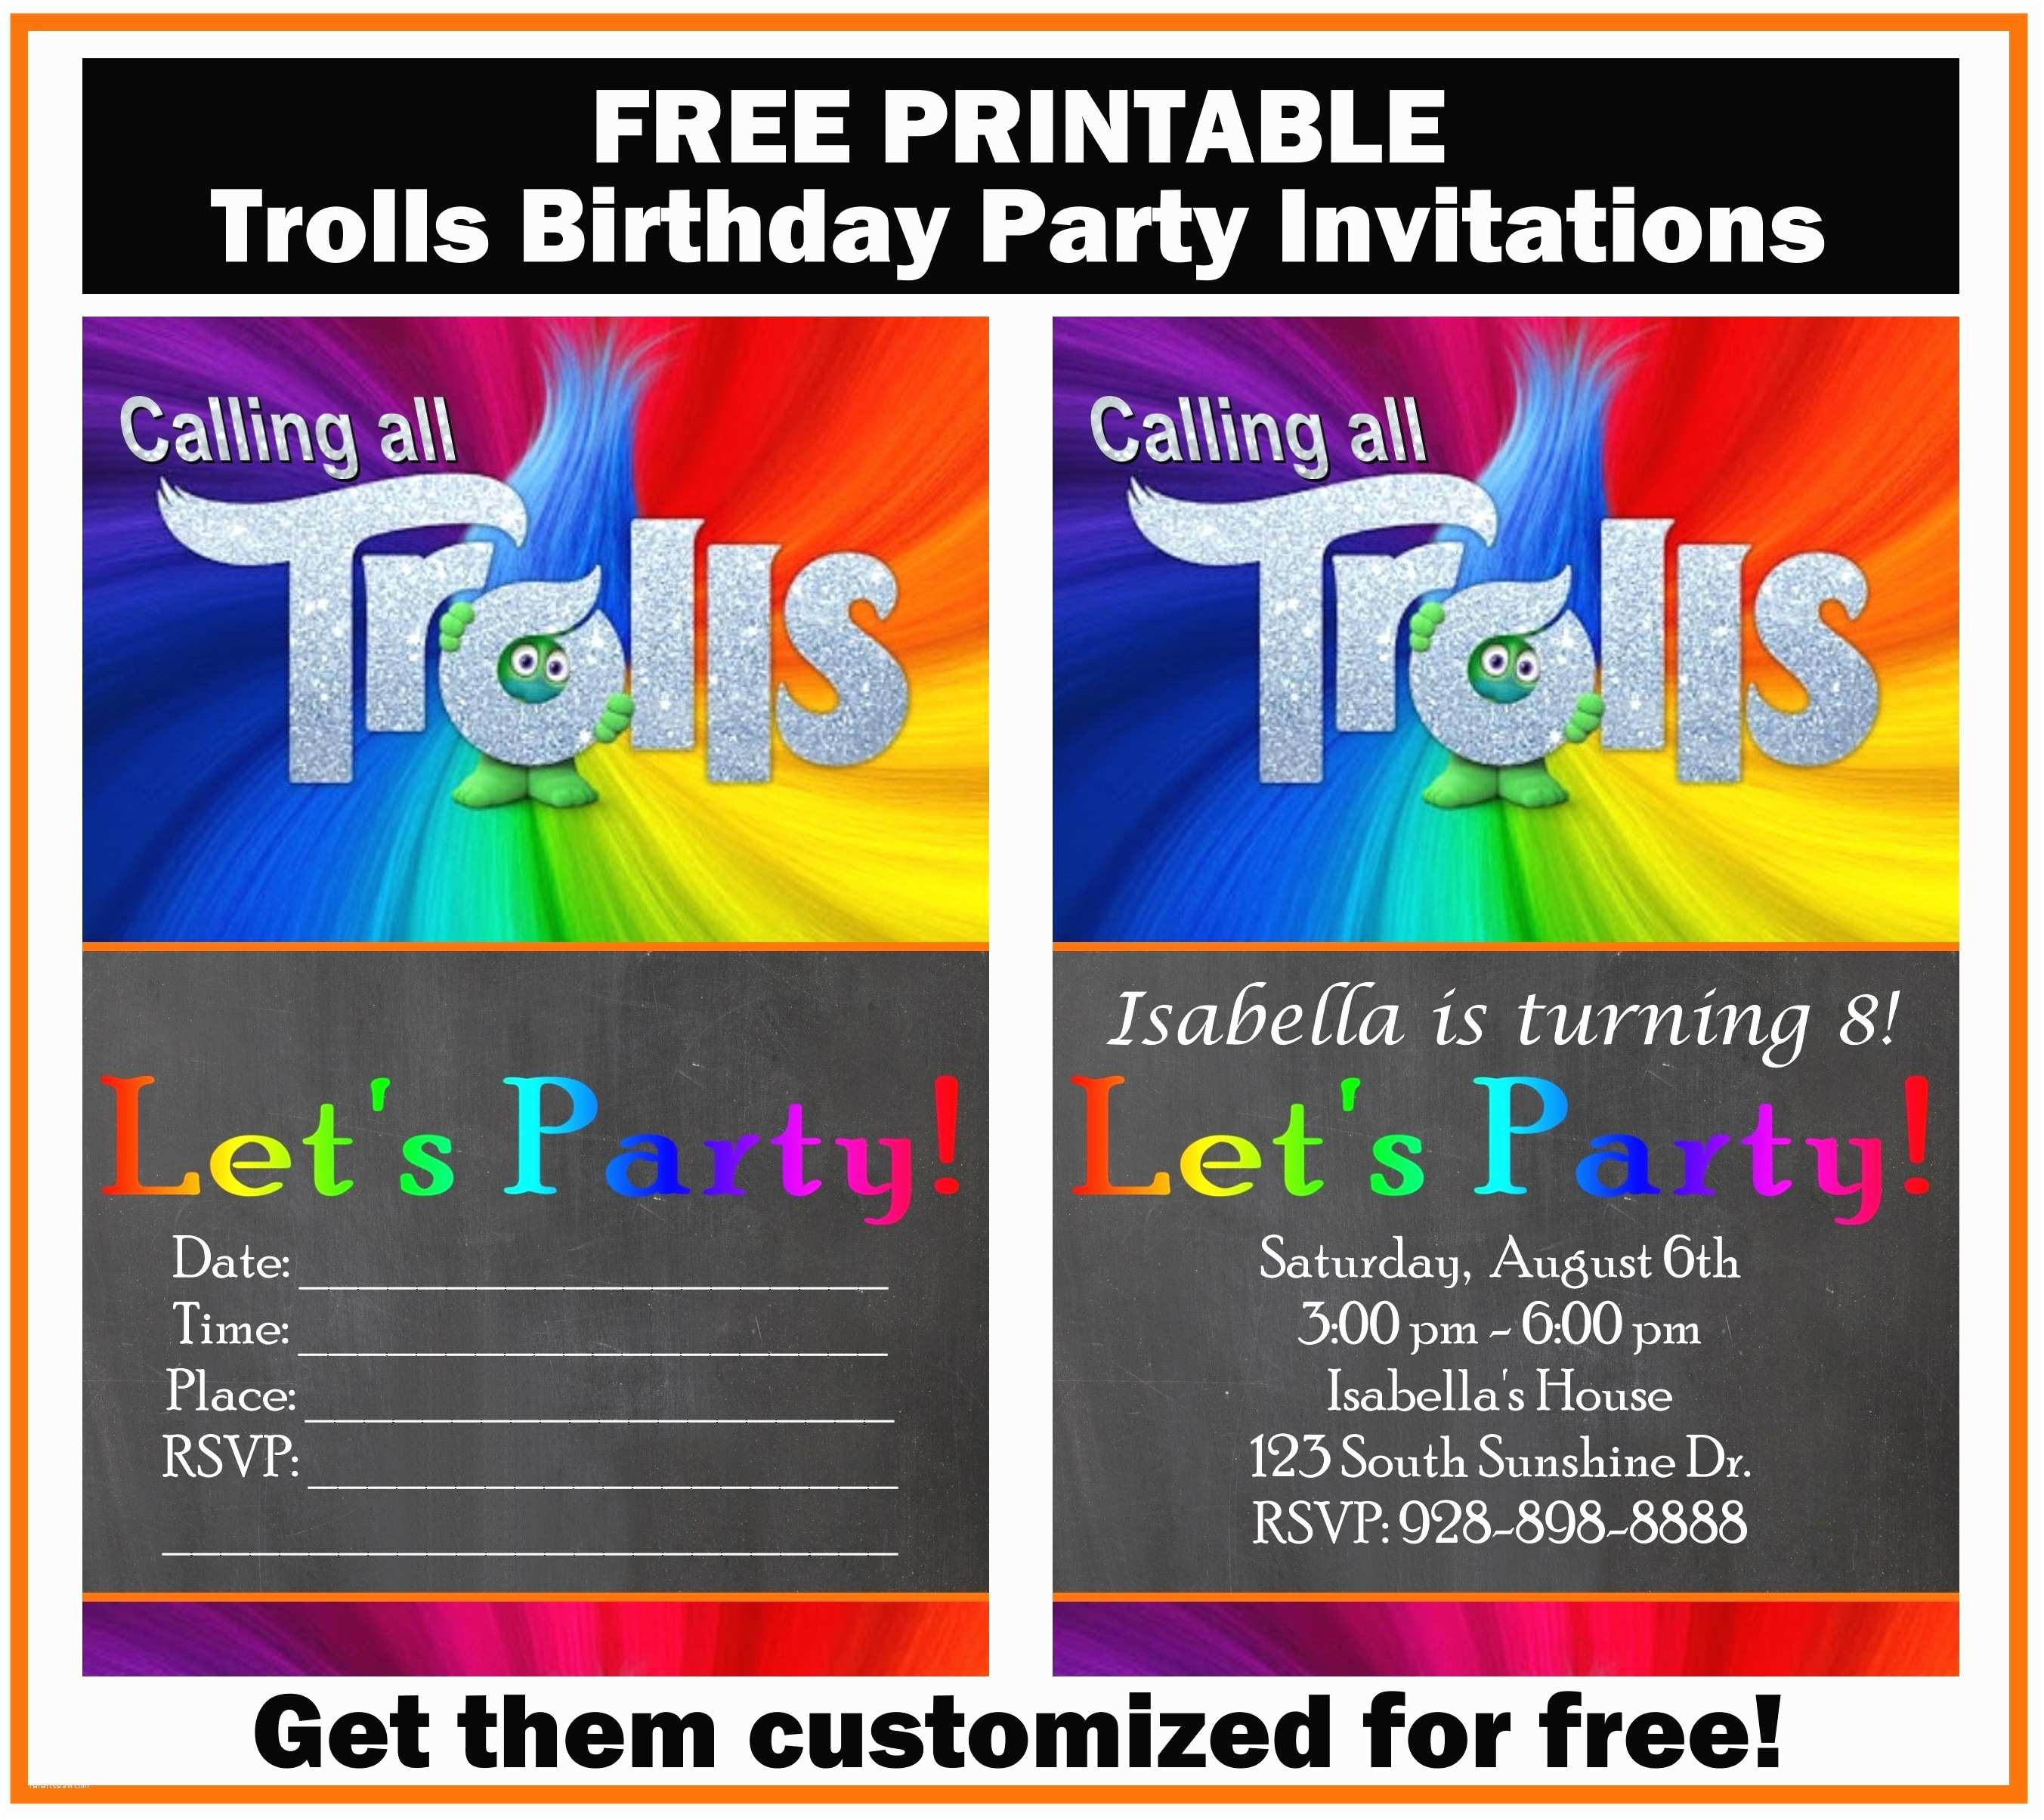 graphic regarding Printable Trolls Invitations named Trolls Birthday Occasion Invites No cost Trolls Birthday Bash